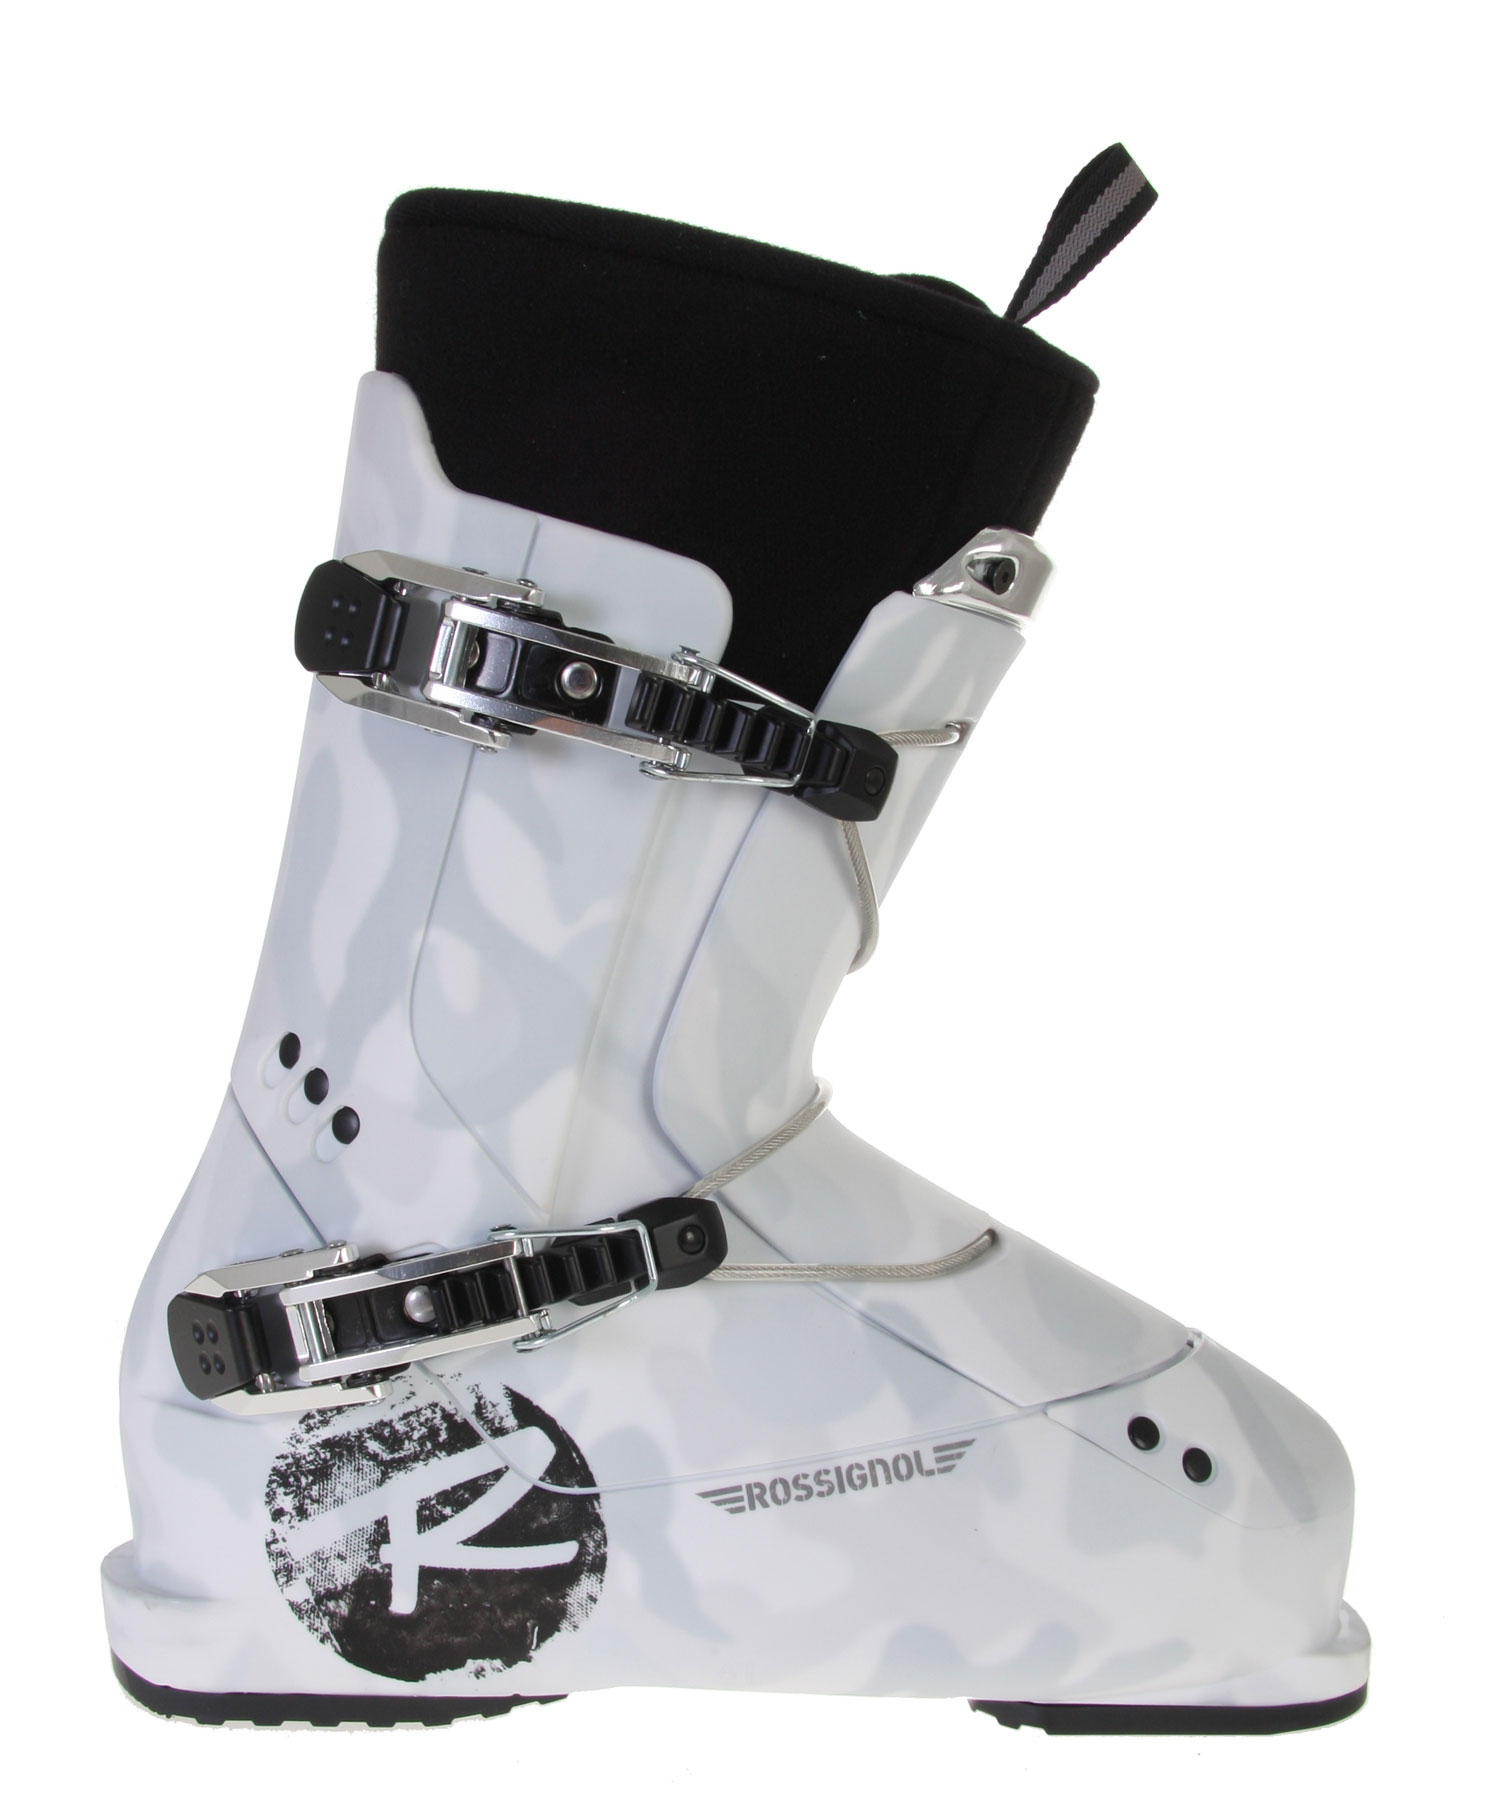 Ski Hard core, professional jib boot targeted for all day park invasions and superpipes. This new freestyle boot design is one-of-a-kind with many innovations for stomping any landing.Key Features of the Rossignol SAS FS1 Ski Boots:  Flex index: 90  Last: 102mm  Shell: Polyurethane  Spoiler: N/A  Power Strap: 360degrees Velcro  Buckles: 2 Milled Aluminum Micro Buckles  Catches: 2  Foot Board: Visco Rubber  Liner: EVA - Thermo Moldable - $219.95